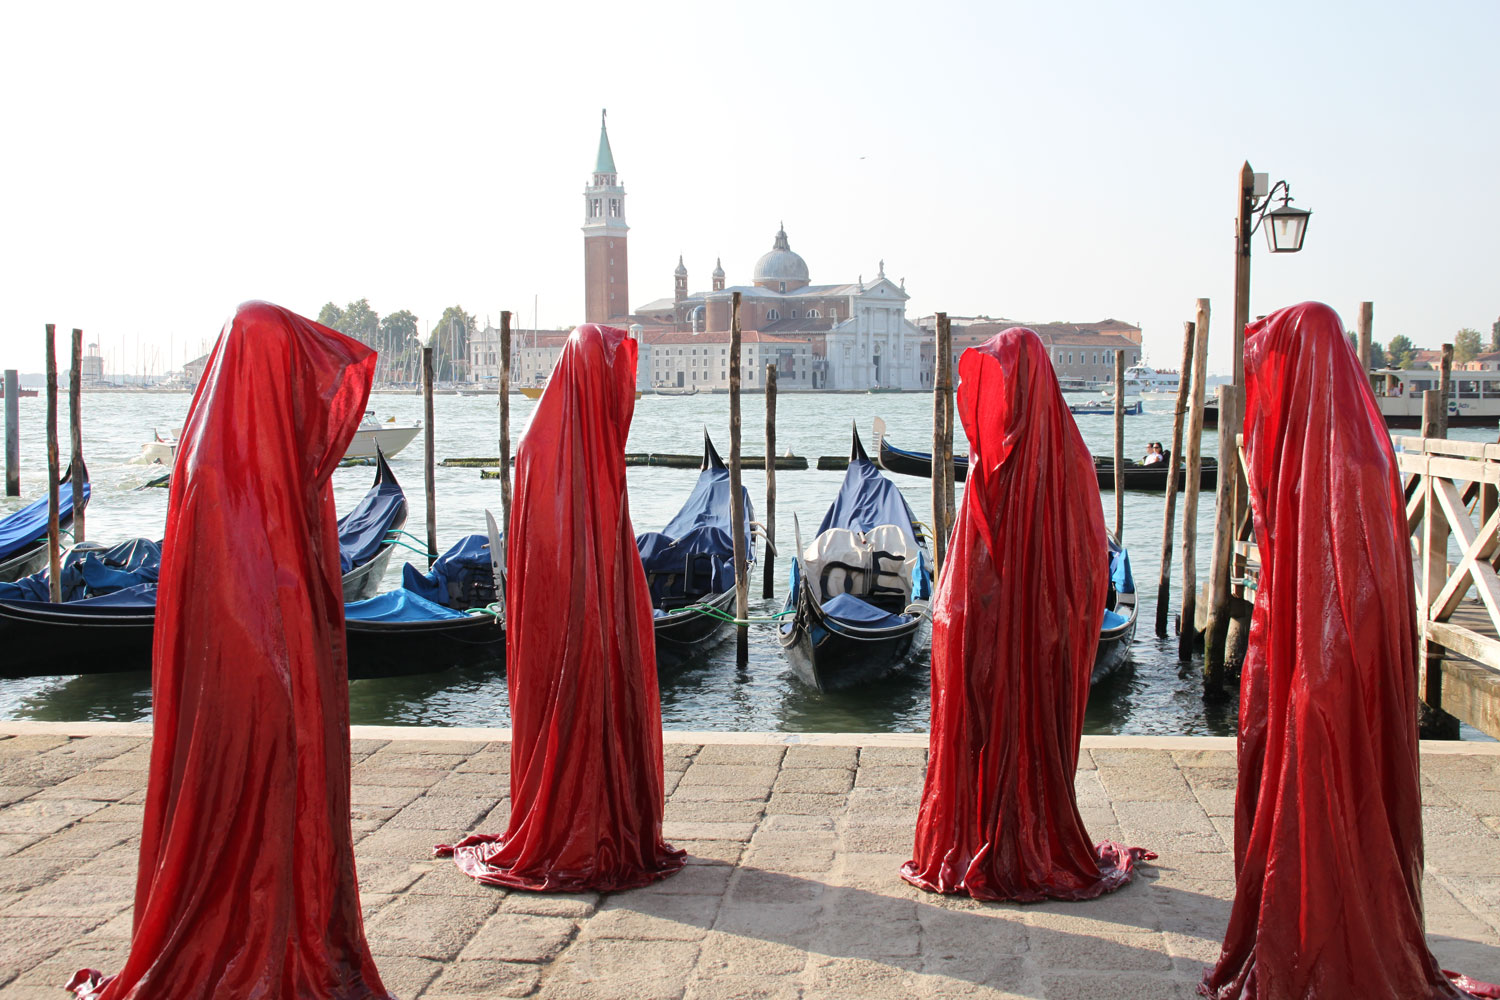 public biennale de arte venice international world light art arts design exhibition sculpture guardians of time manfred kielnhofer 4345